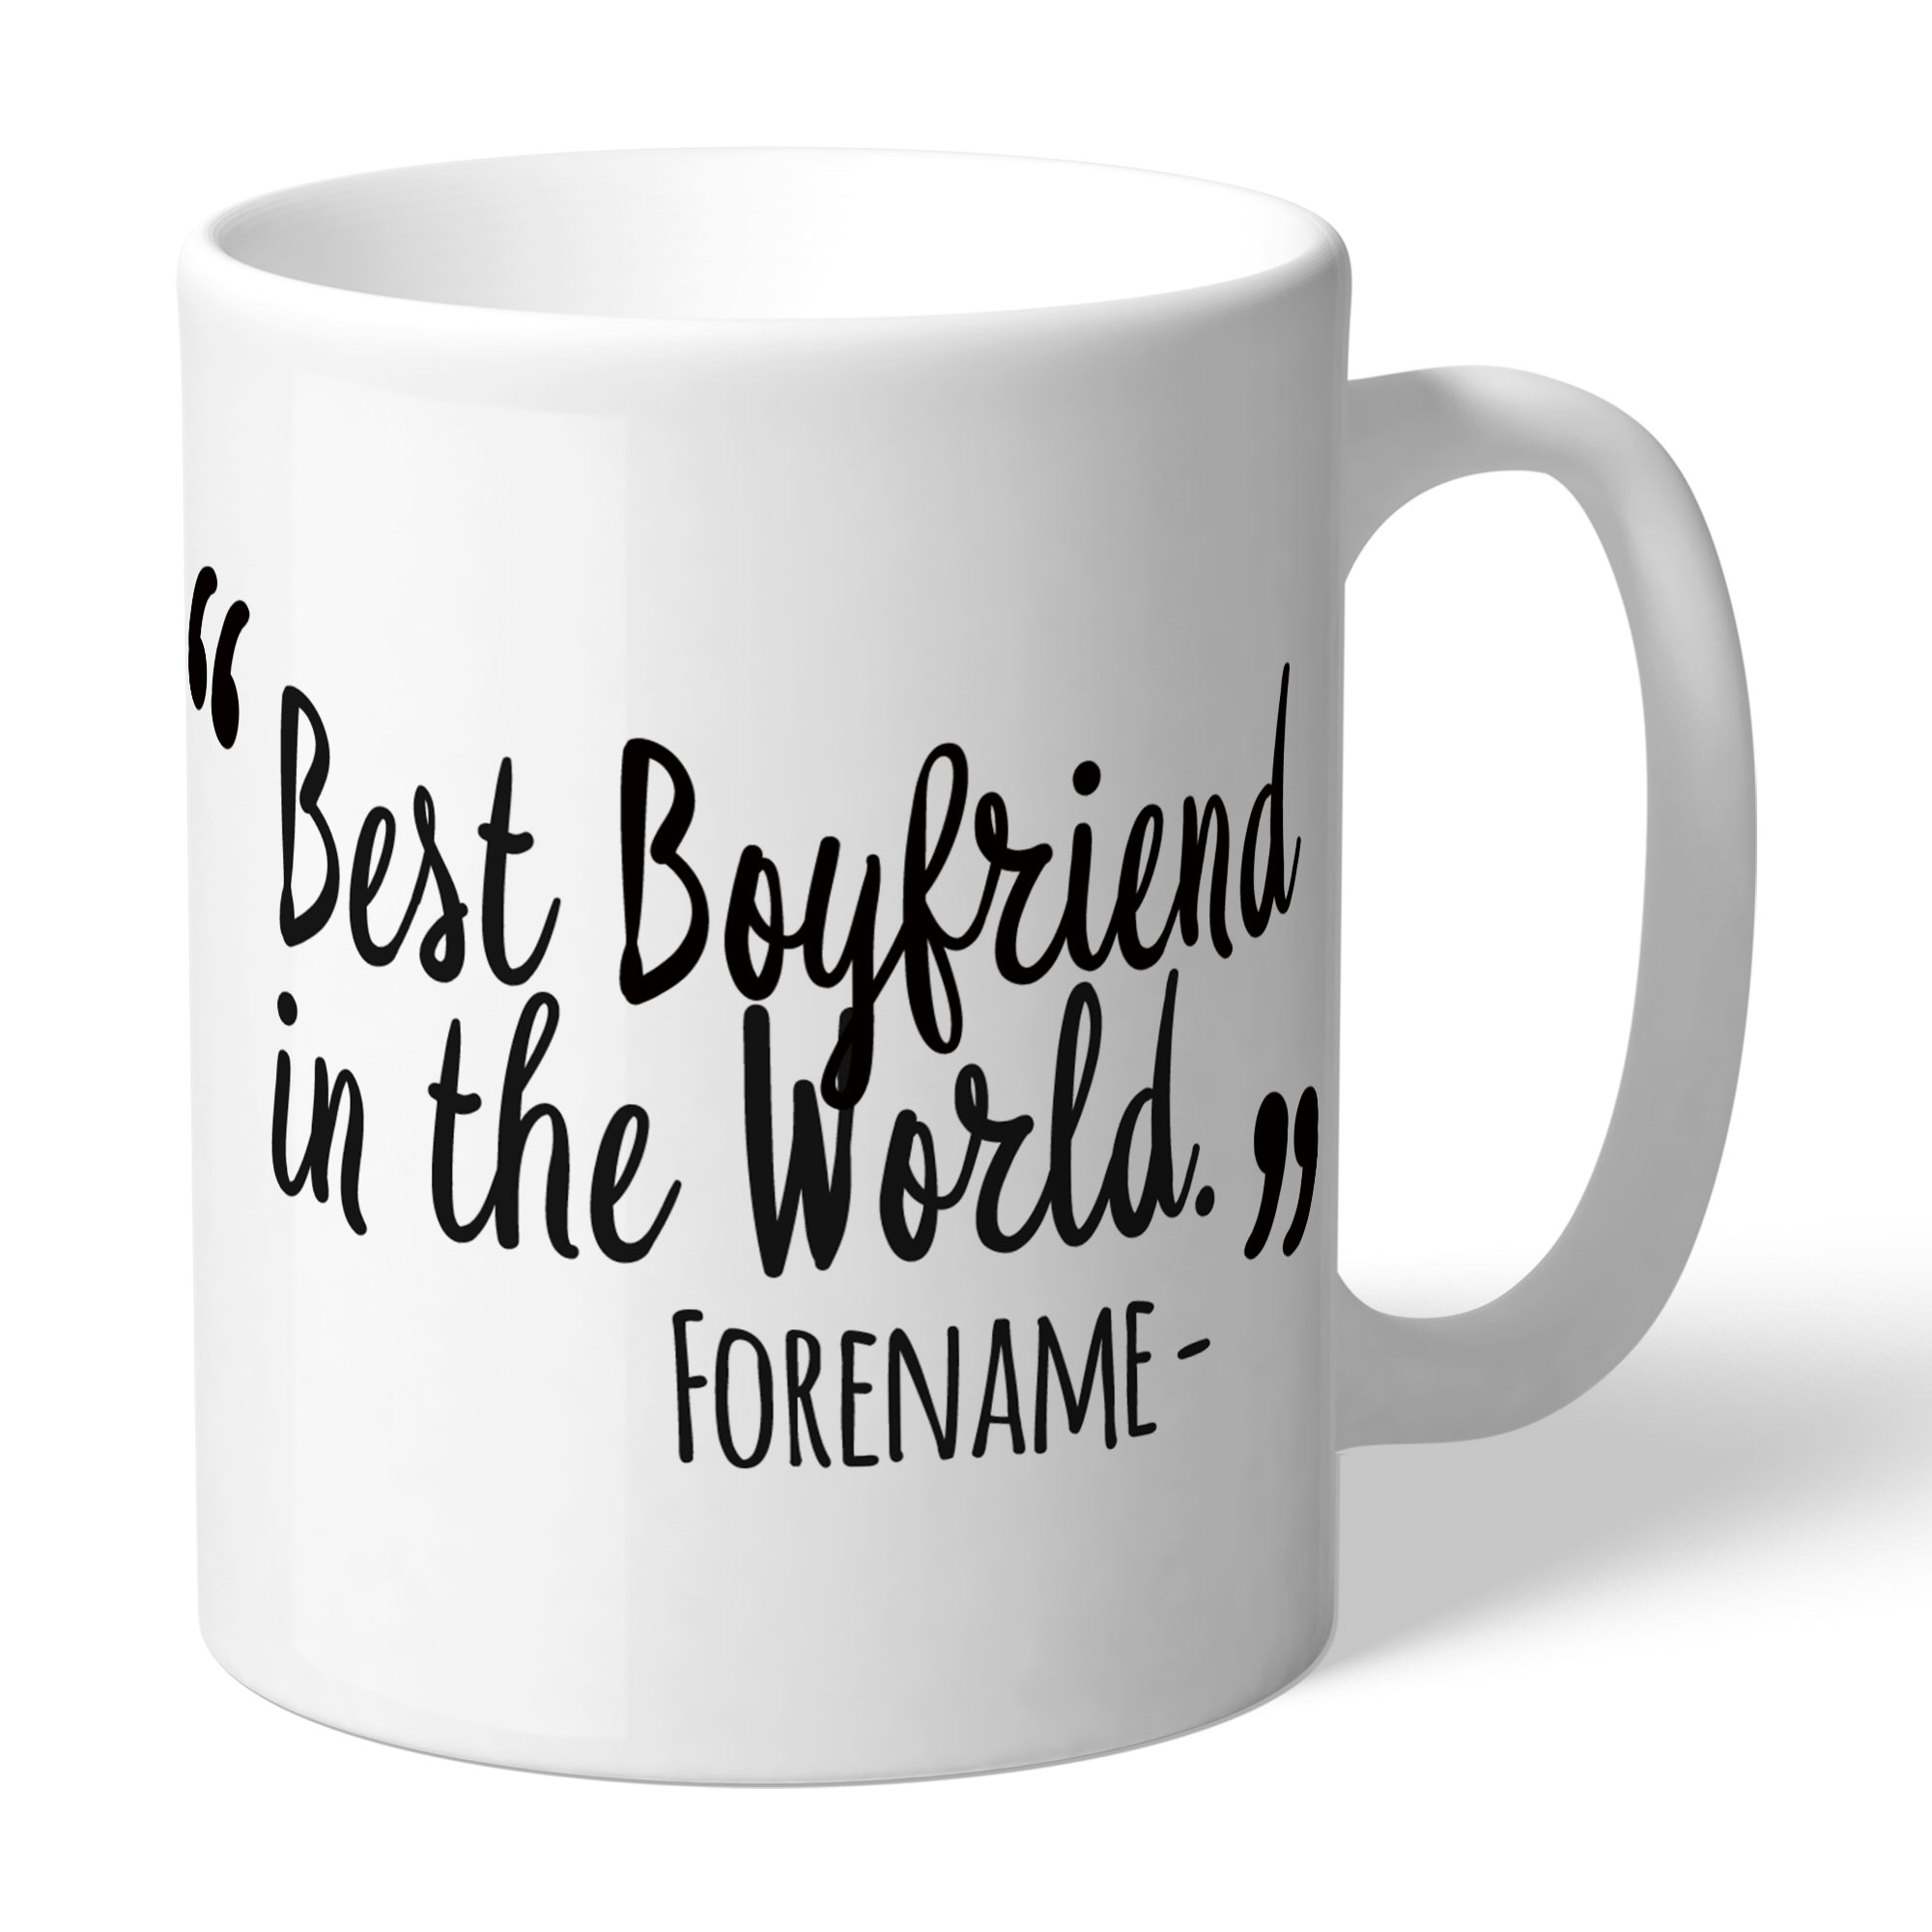 Swansea City AFC Best Boyfriend In The World Mug